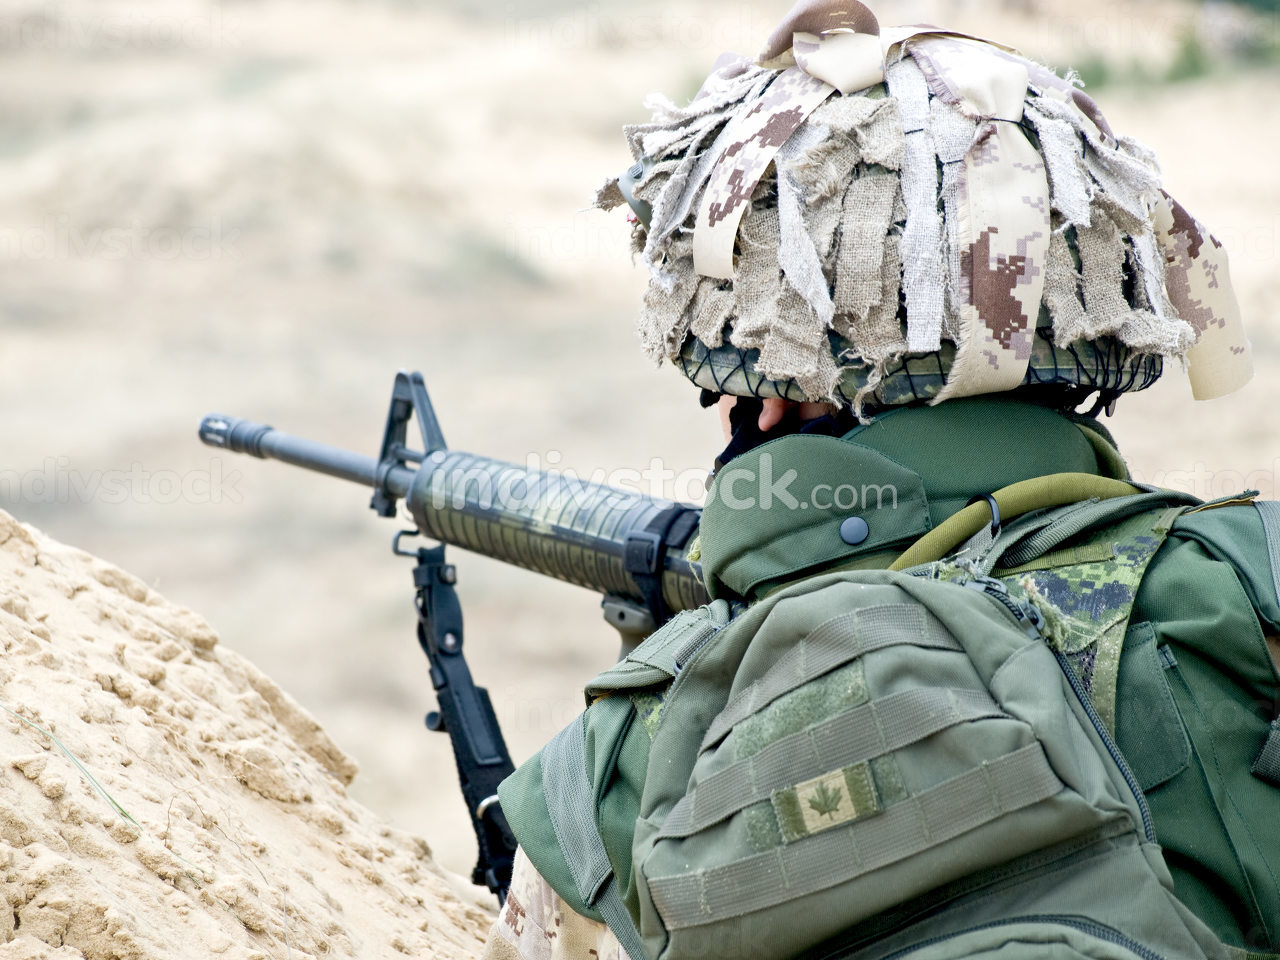 soldier in desert uniform aiming his rifle